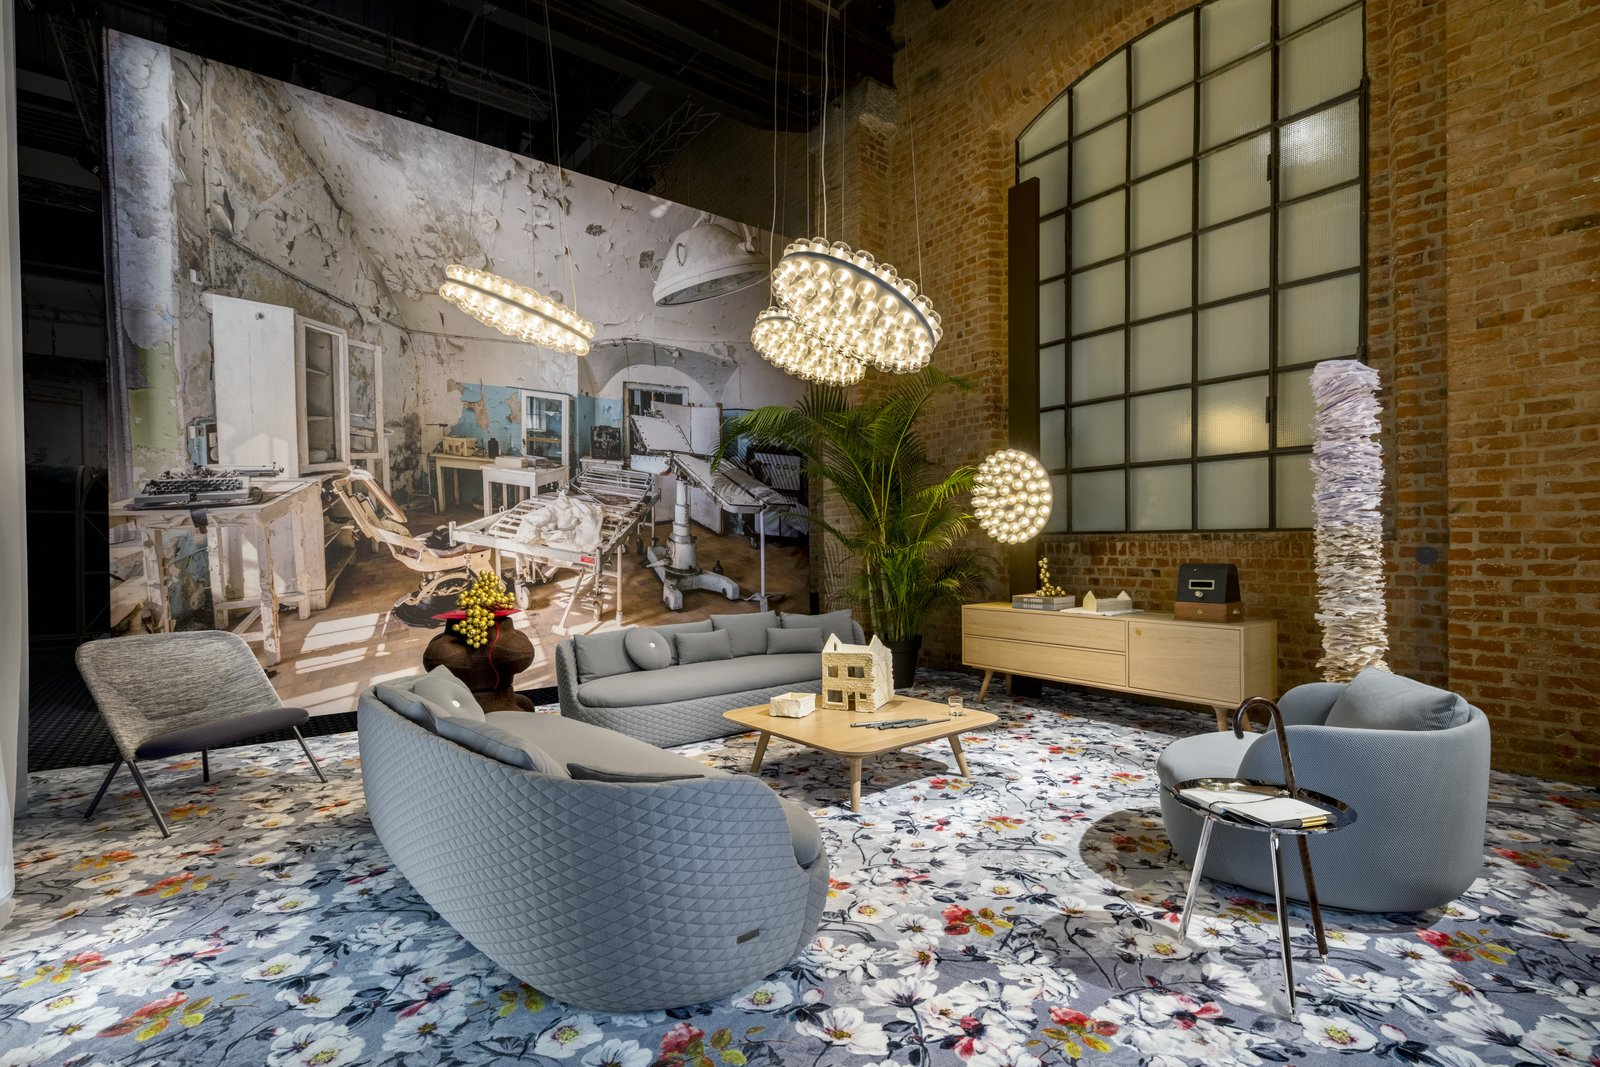 Photo 3 of 4 in Moooi Carpets